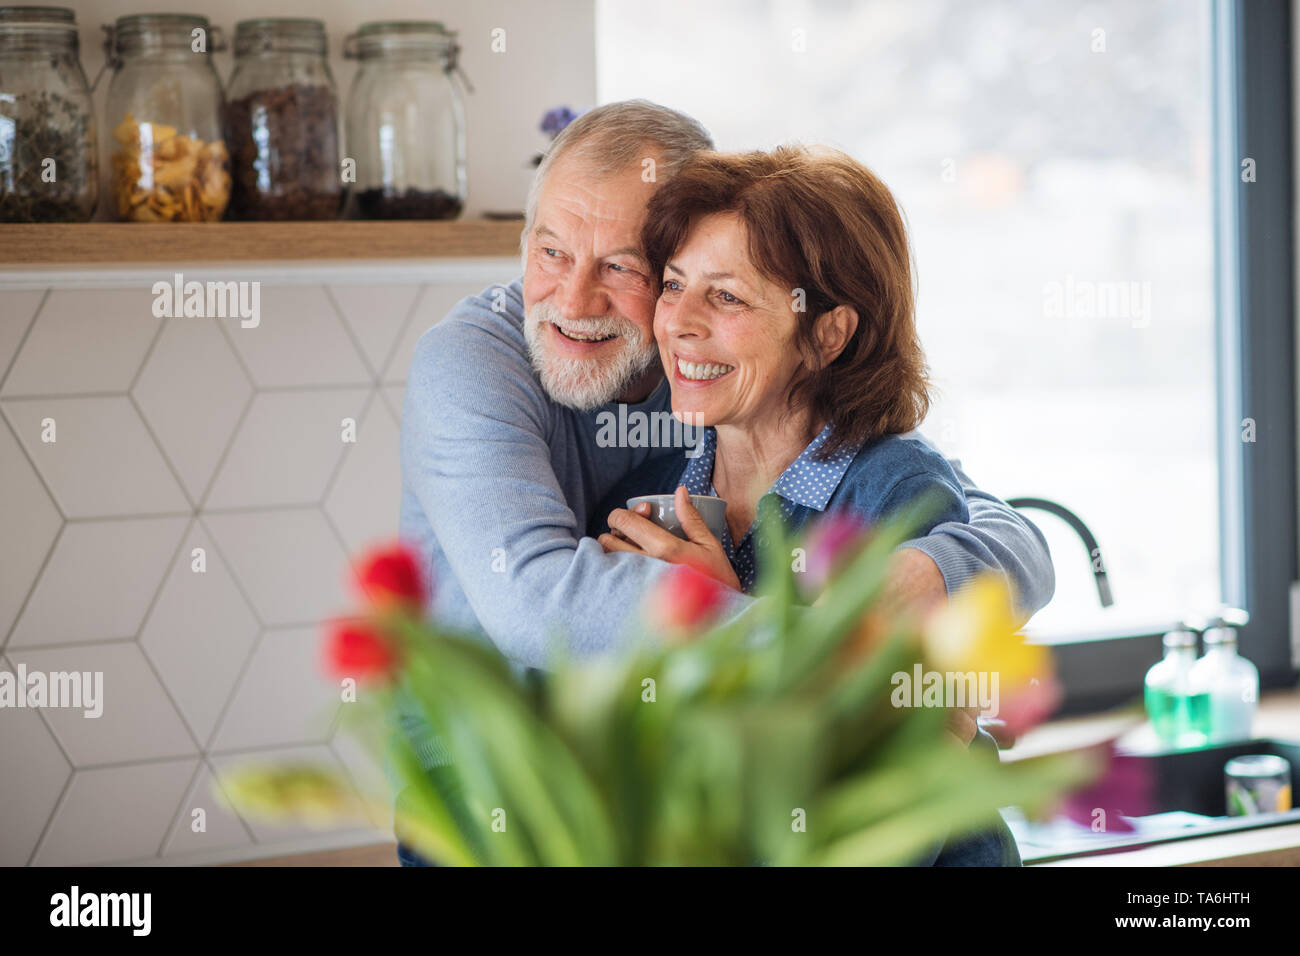 A portrait of senior couple in love indoors at home, holding coffee. - Stock Image